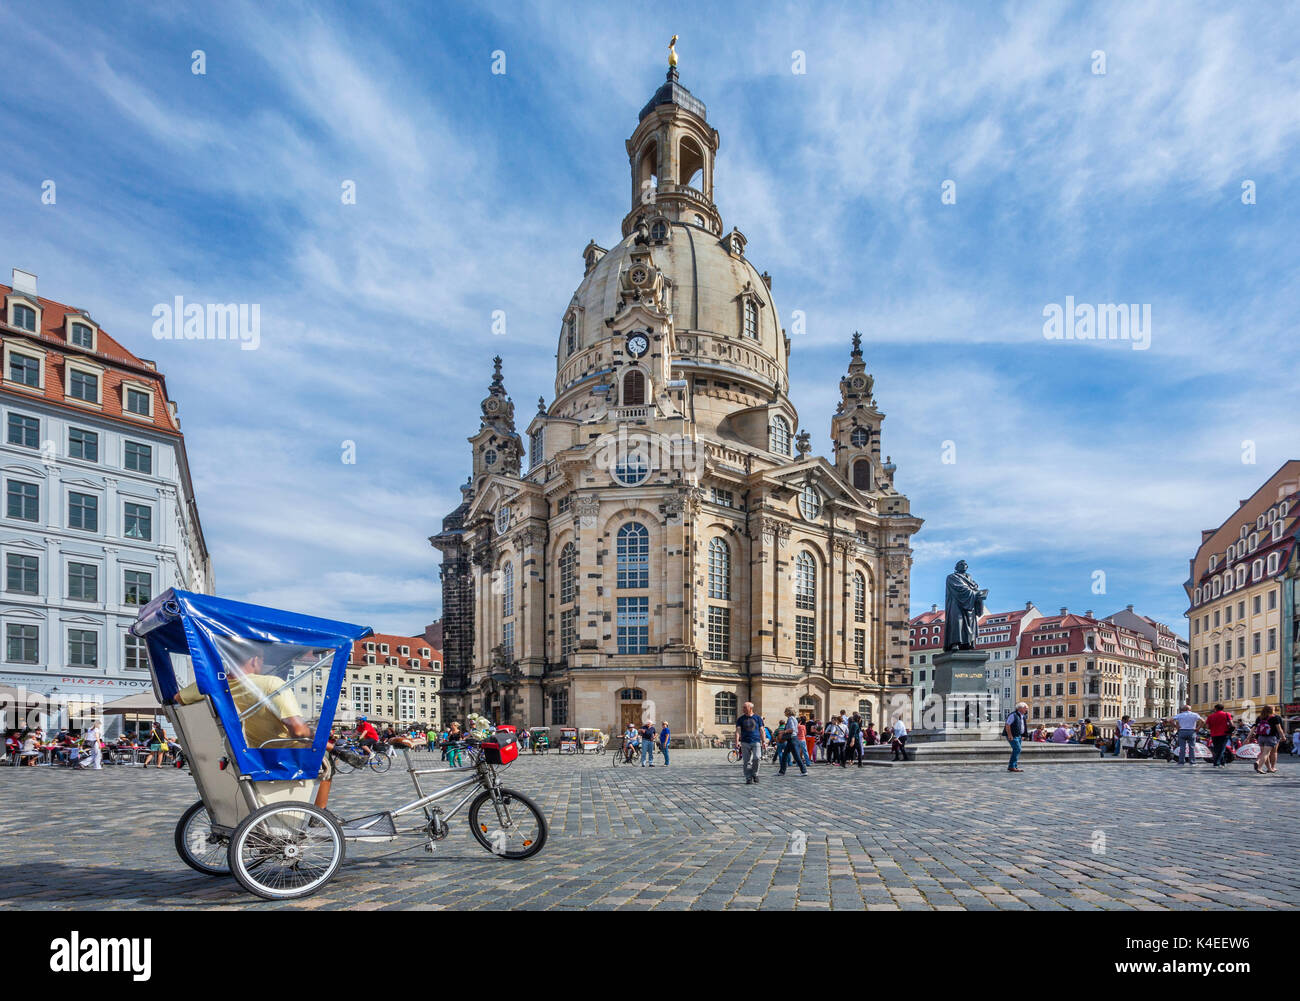 Germany, Saxony, Dresden, Neumarkt Square with view of the Martin Luther memorial and the reconstructed Dresden Frauenkirche - Stock Image